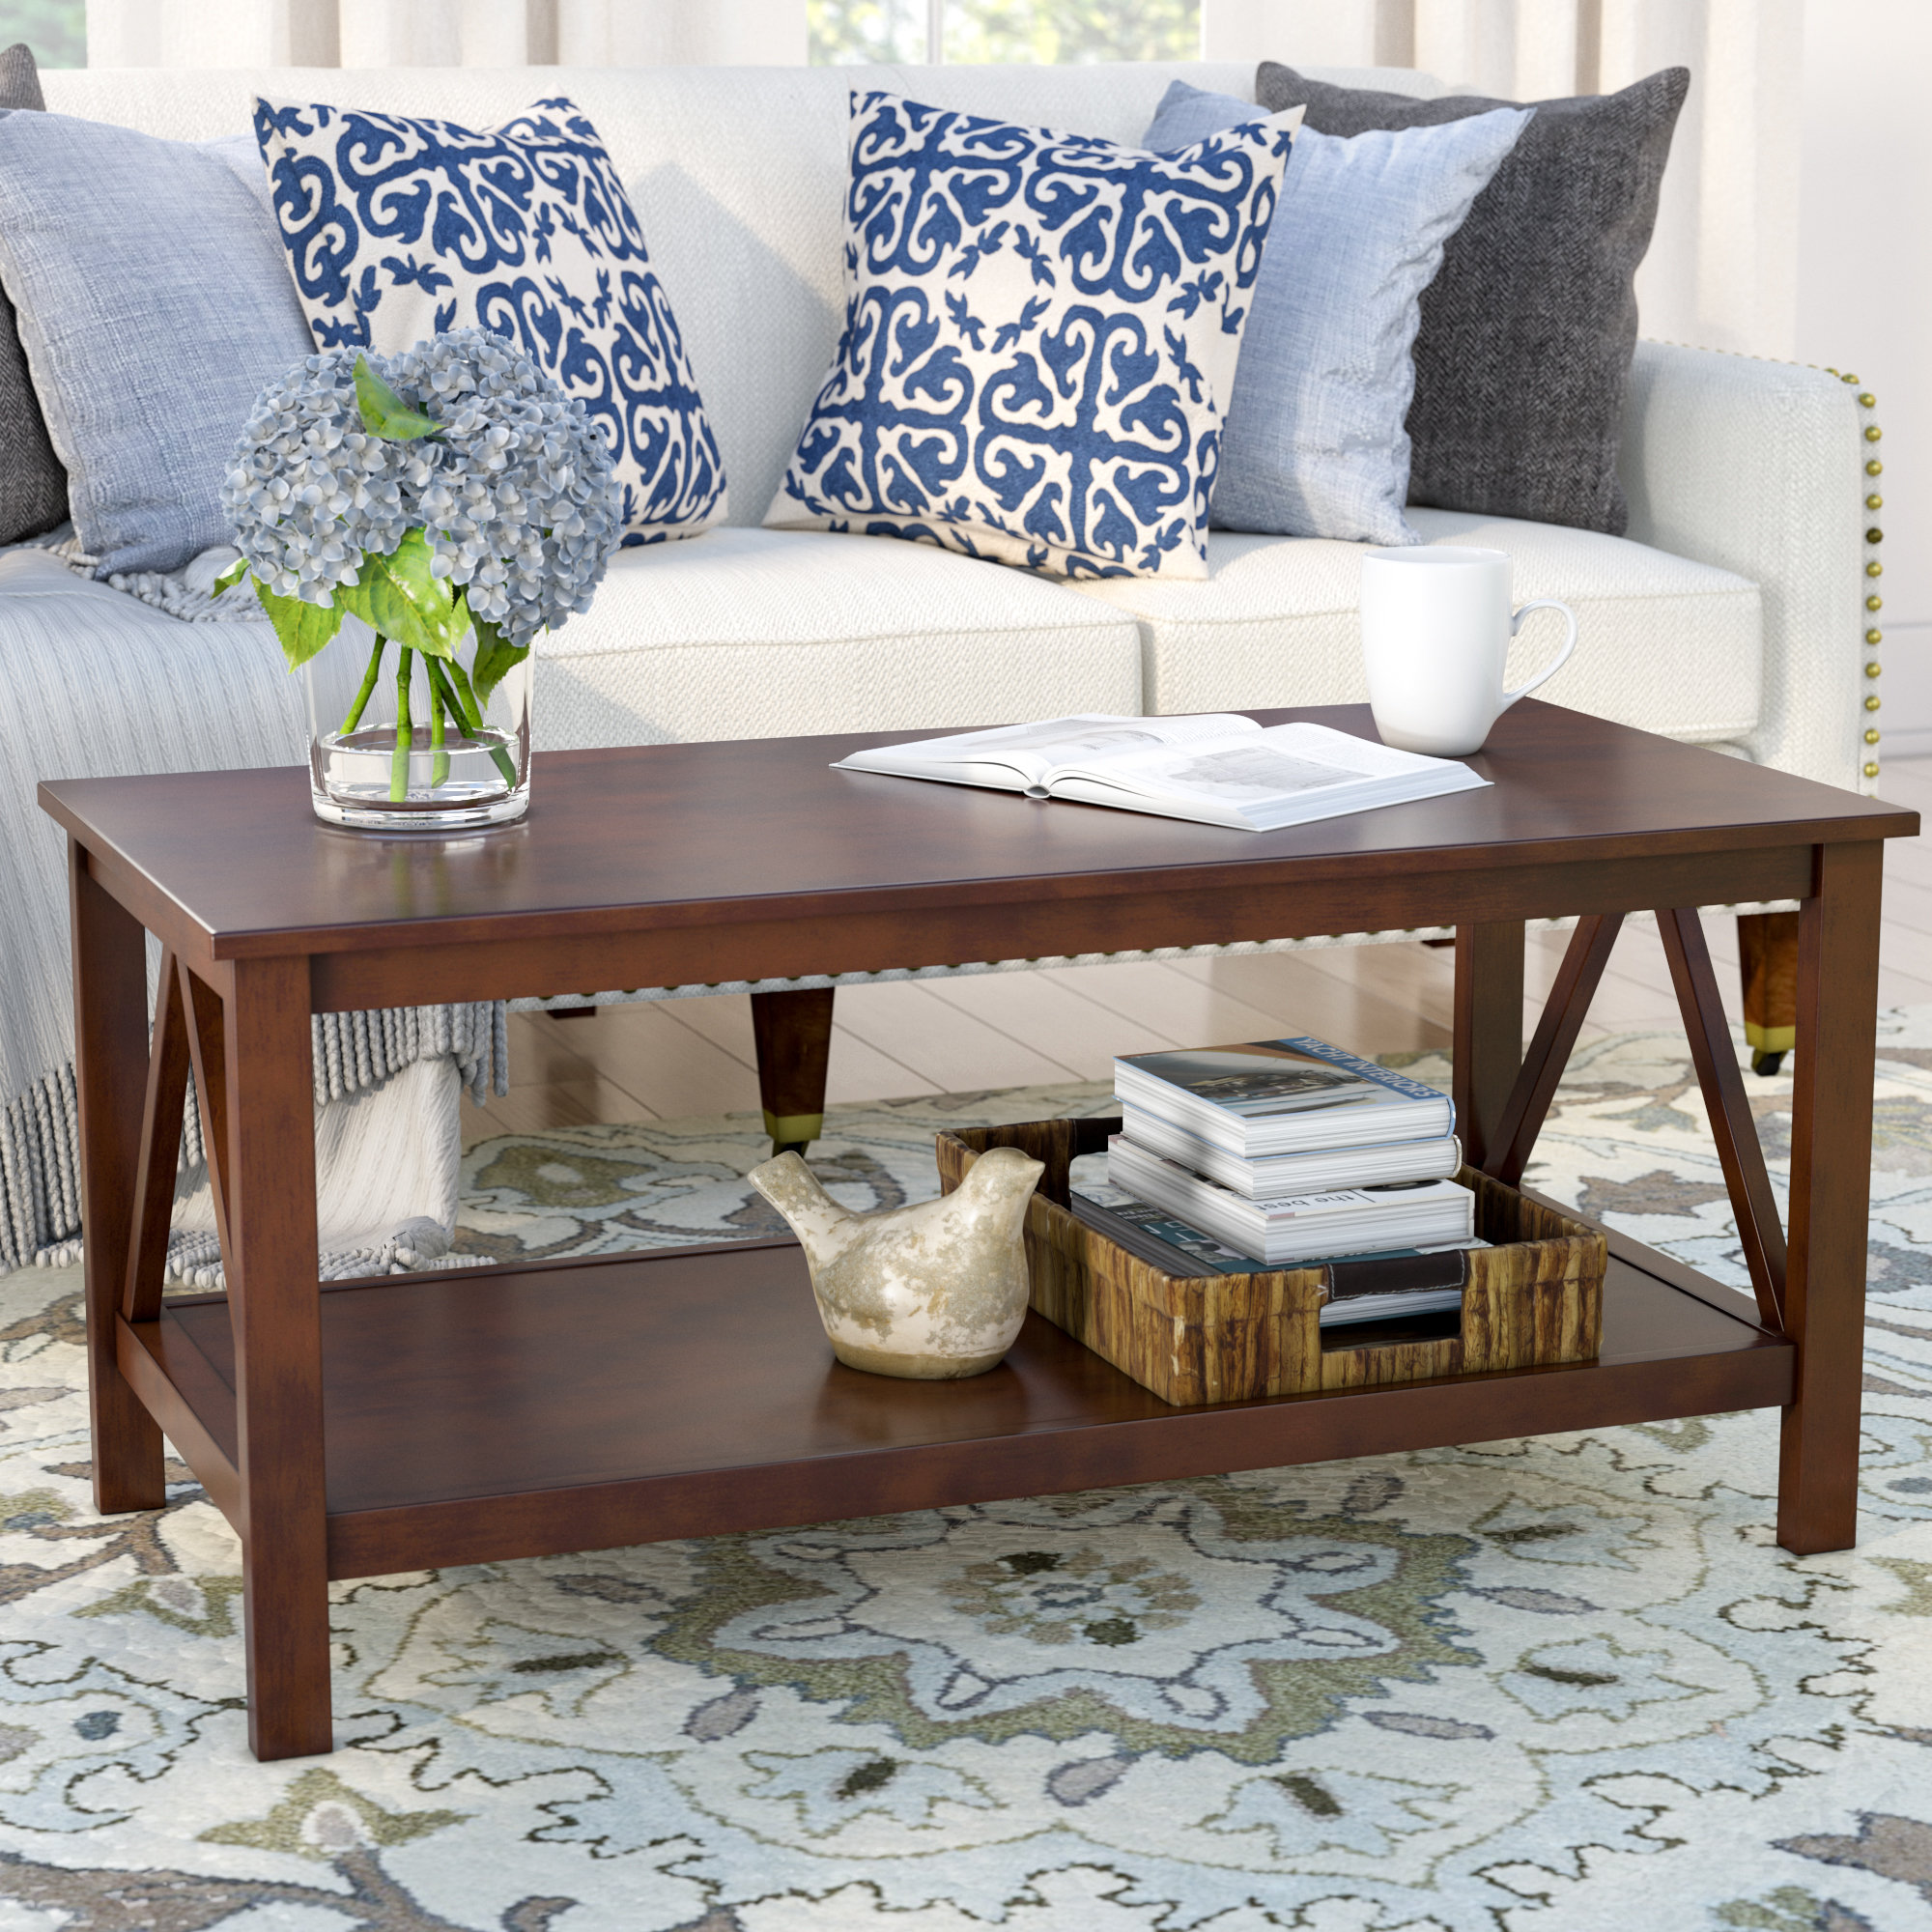 antique coffee table brassiewood the eryn accent farmhouse style side inch round christmas tablecloth wood one drawer threshold west elm lighting grey bedroom lamps cool home